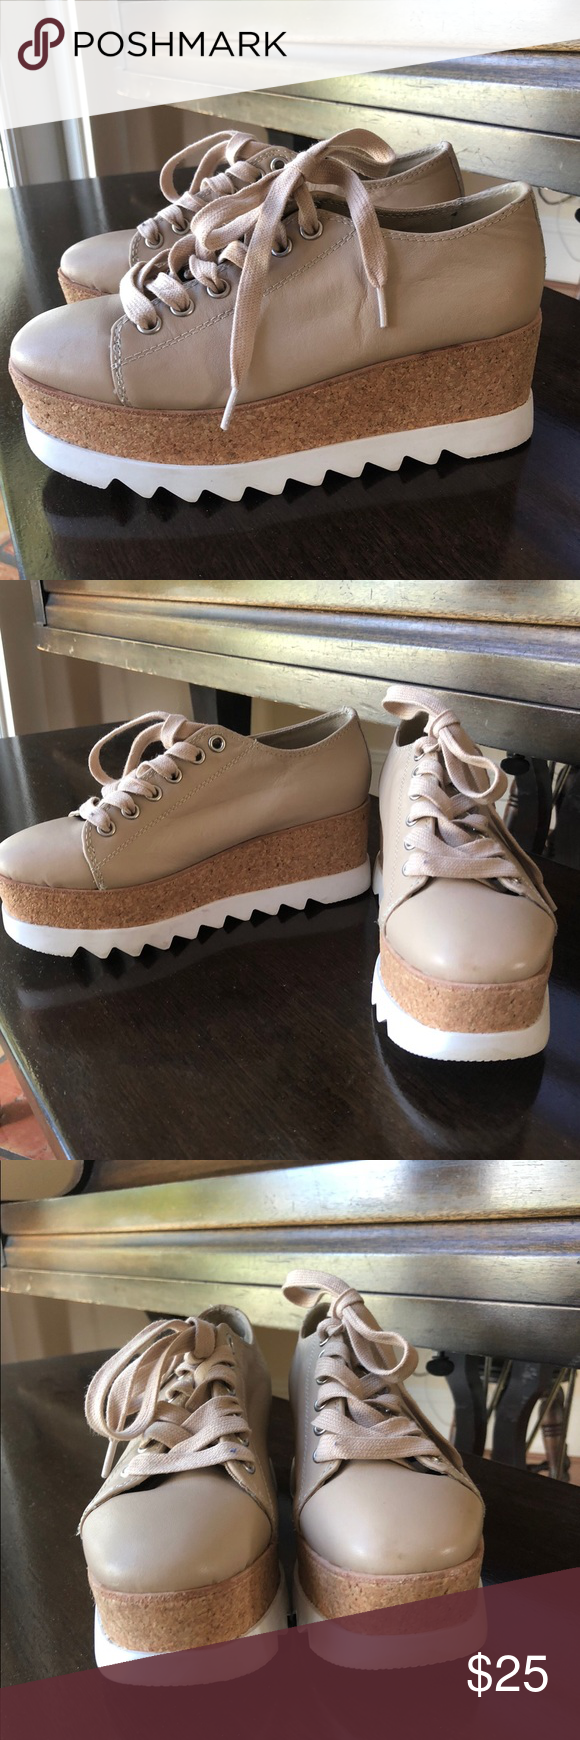 4fab708c221 Steve Madden Korrie Platform Barely worn! Stella McCartney inspired platform  sneaker by Steve Madden. Nude w  white soles. Size 5.5. Super trendy and  cute!